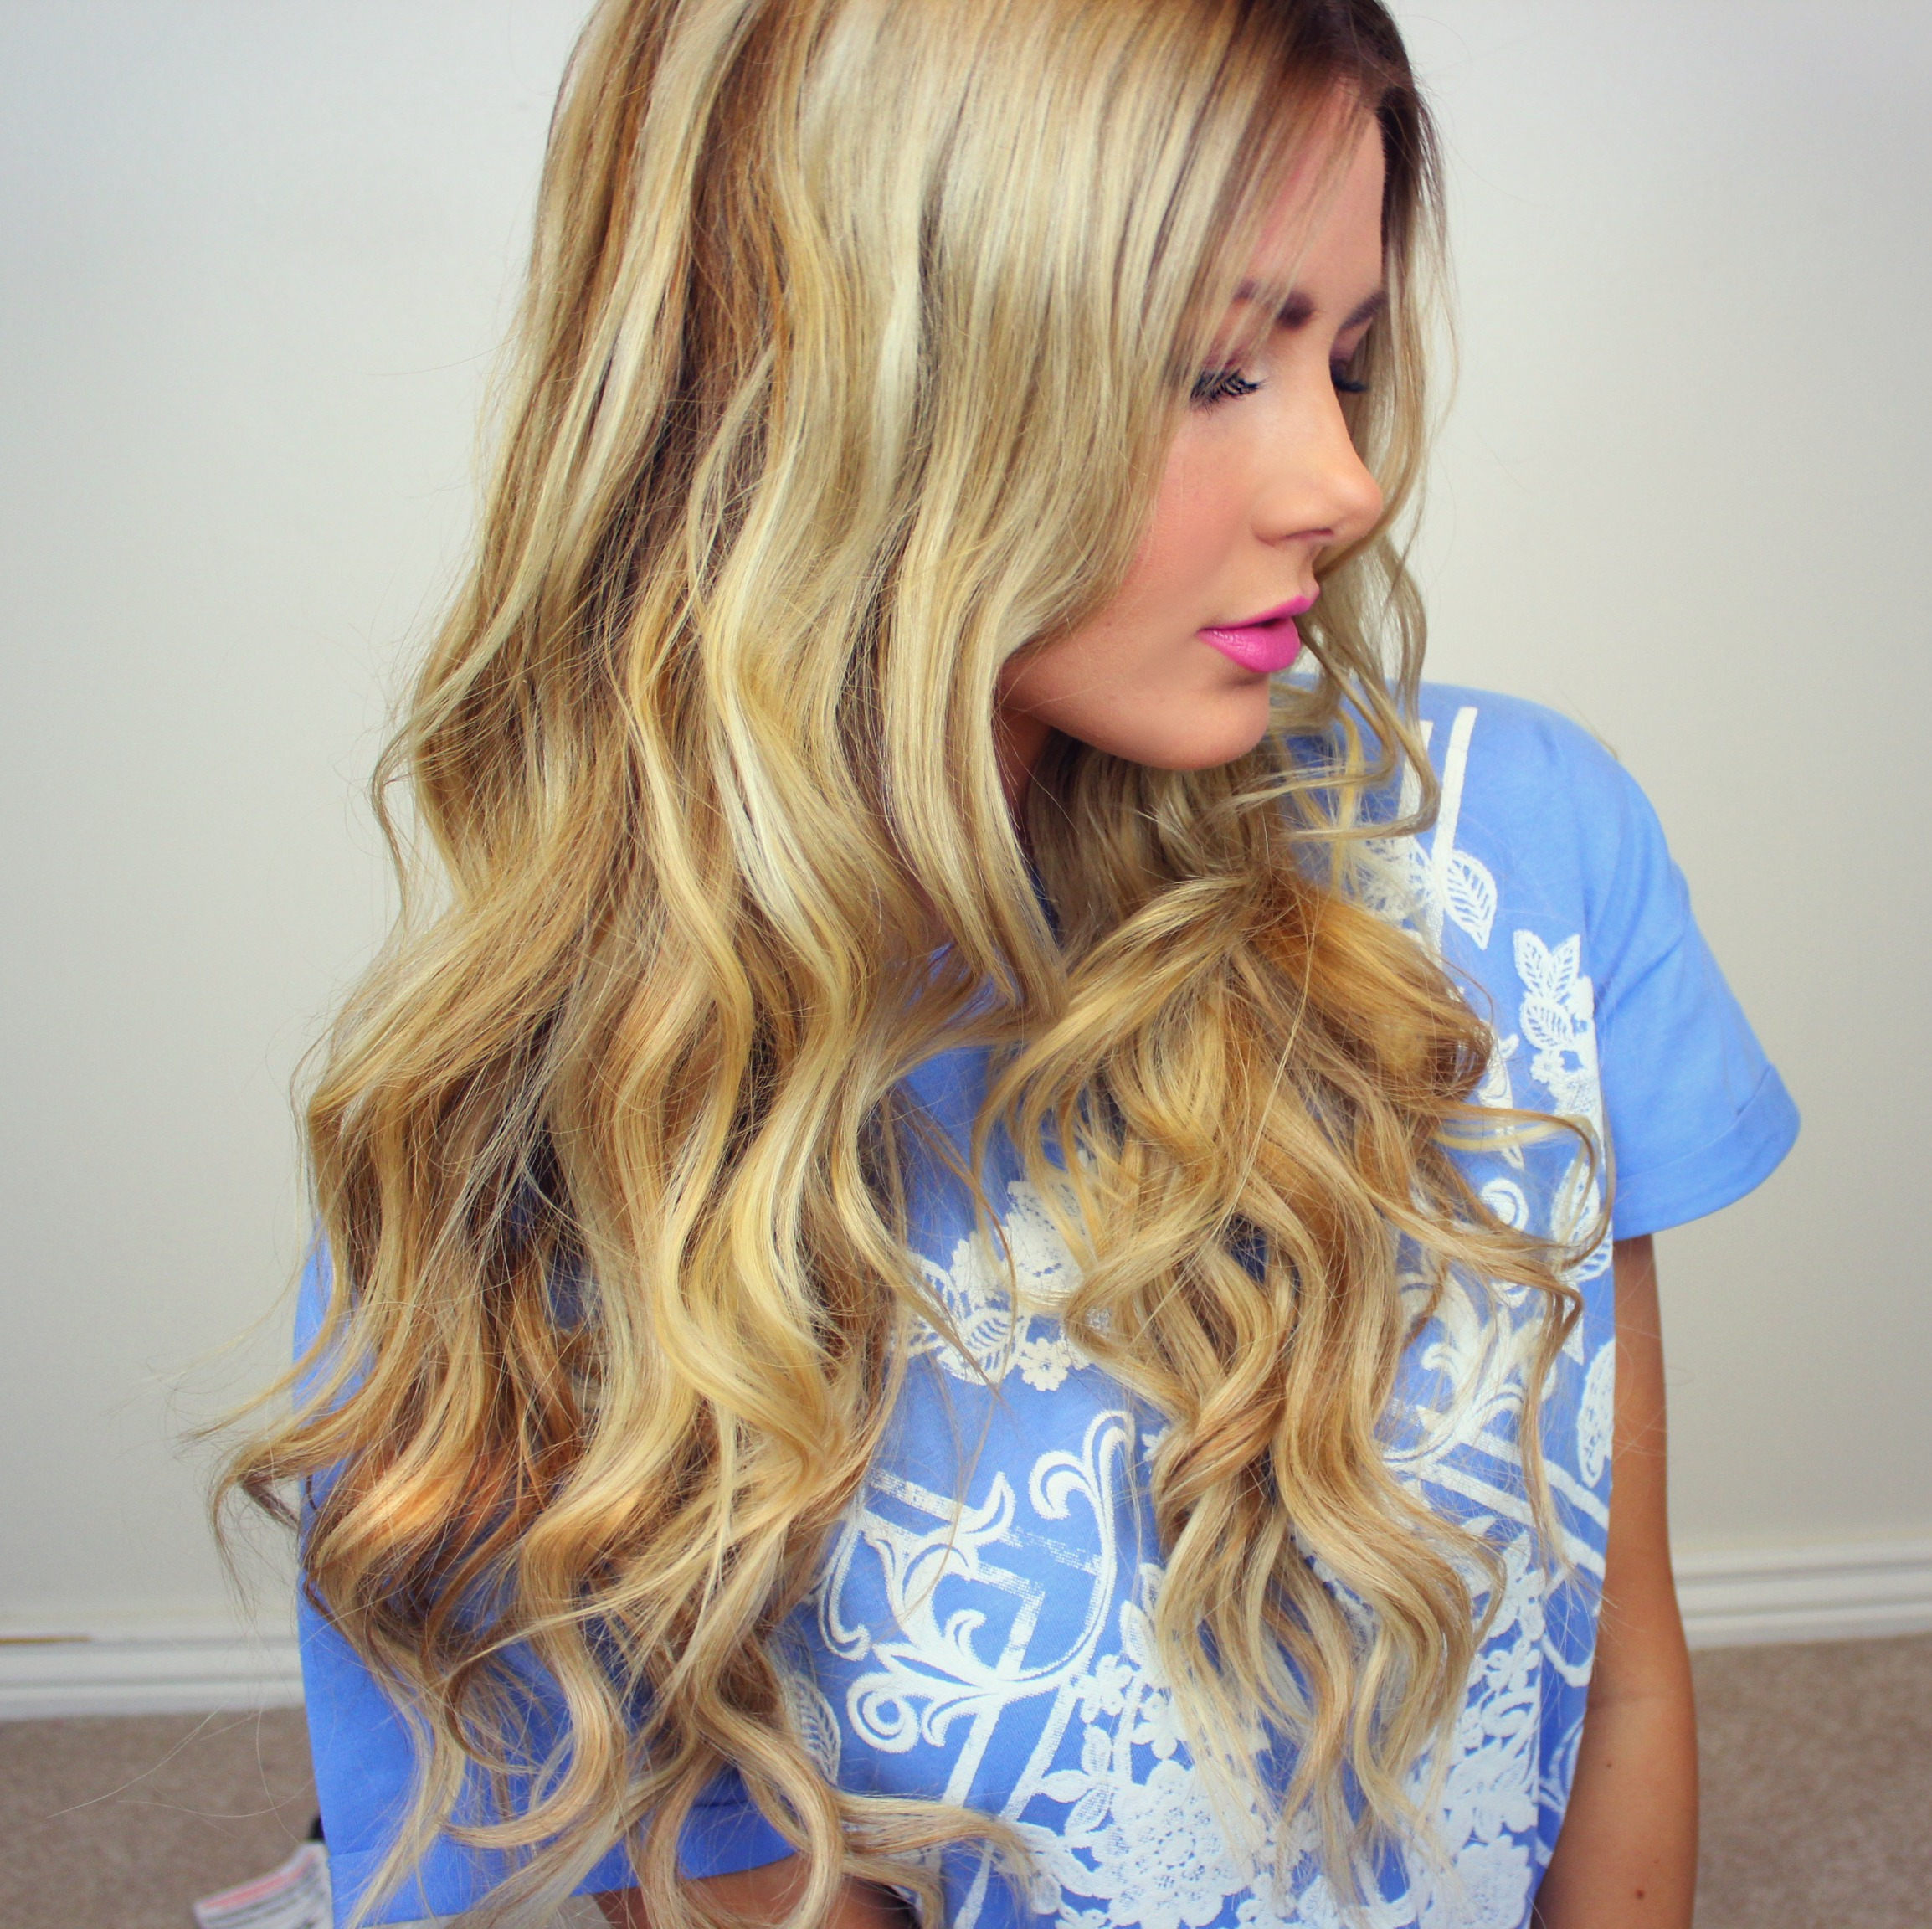 Top 25 blonde hair color ideas in 2017 ashleys bright blonde look is flirty and gorgeous the models base hair color is very light blonde but she tones it down a lot with a healthy smattering pmusecretfo Gallery